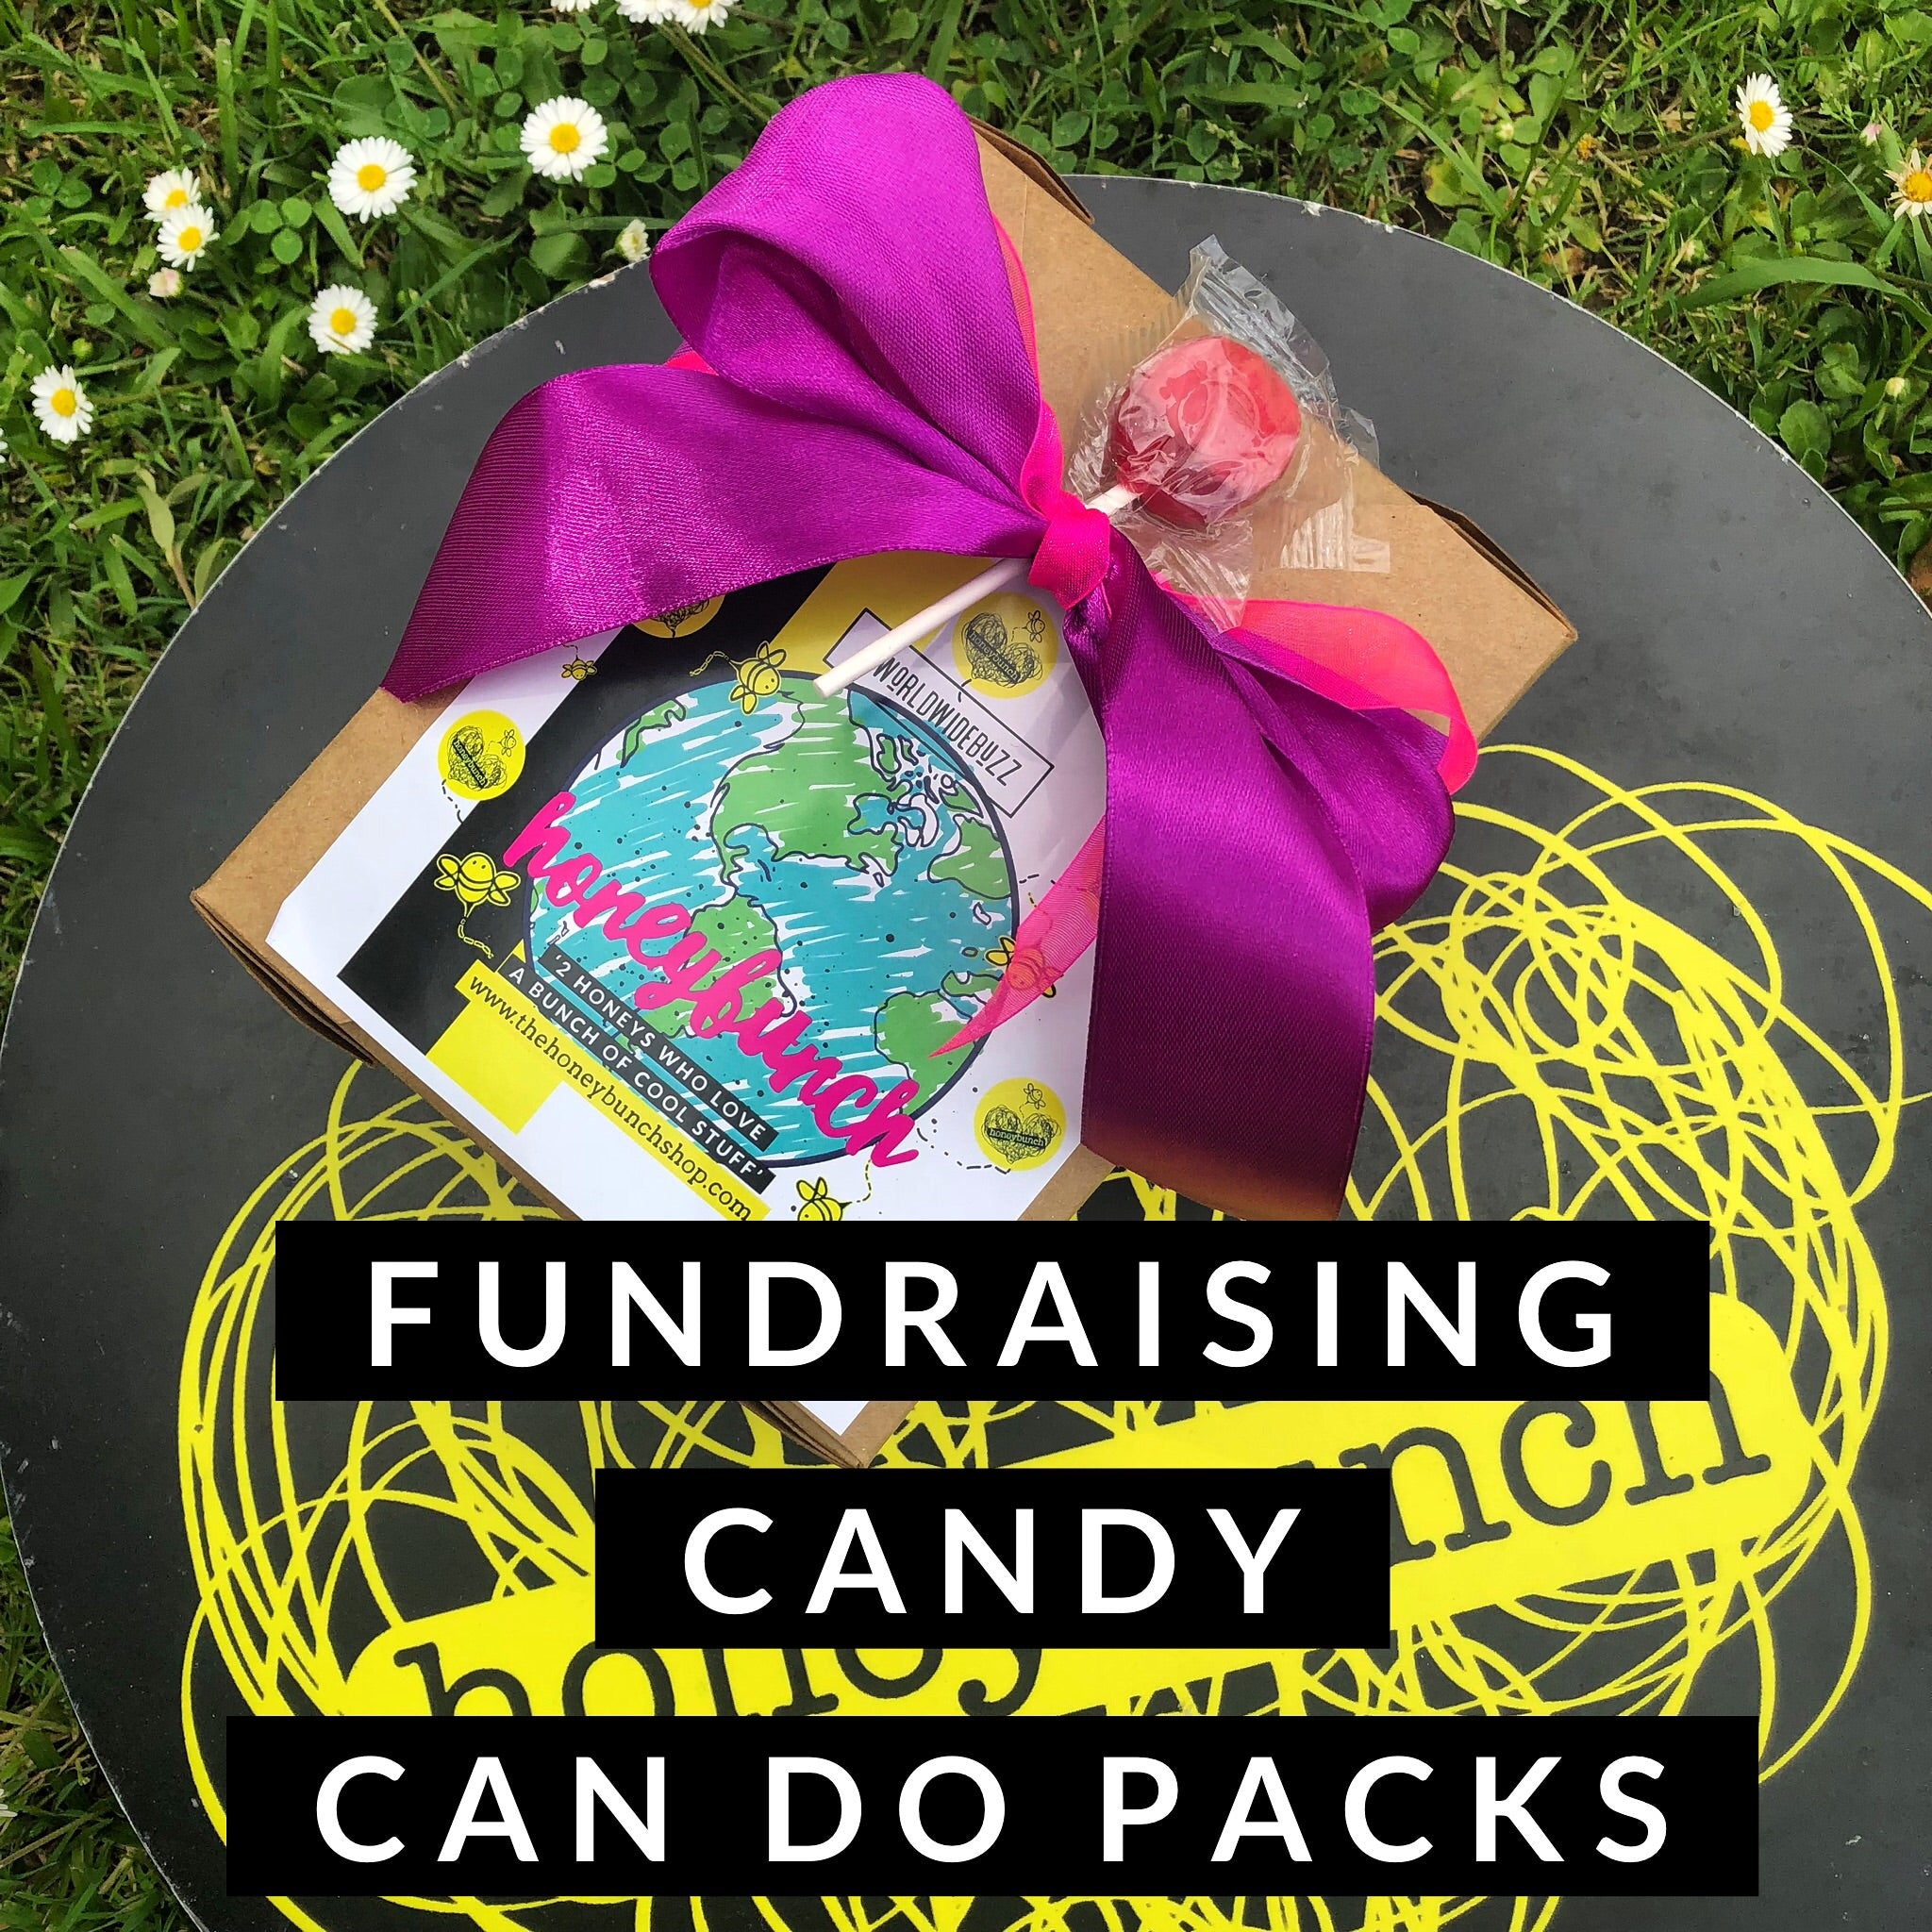 Candy can do fundraising packs